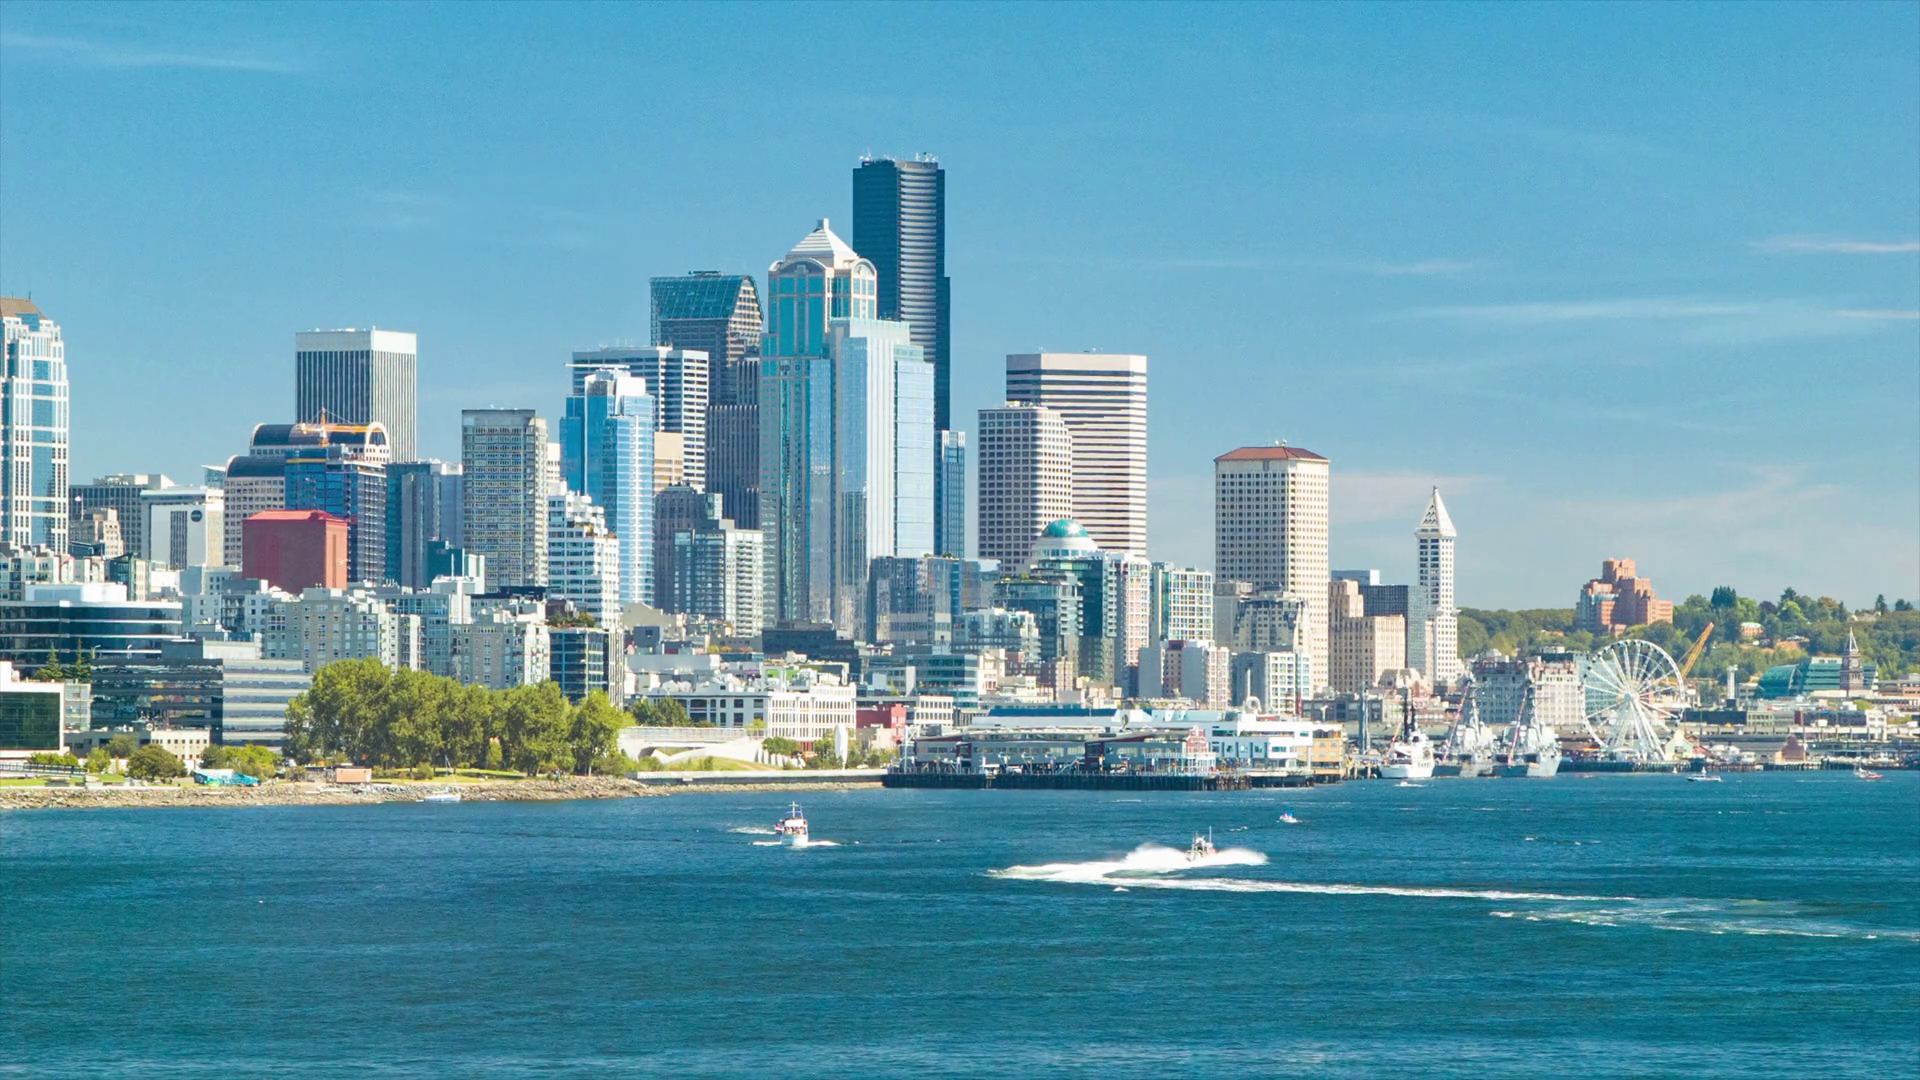 Seattle Washington Downtown City Skyline on a Sunny Day with Water ...